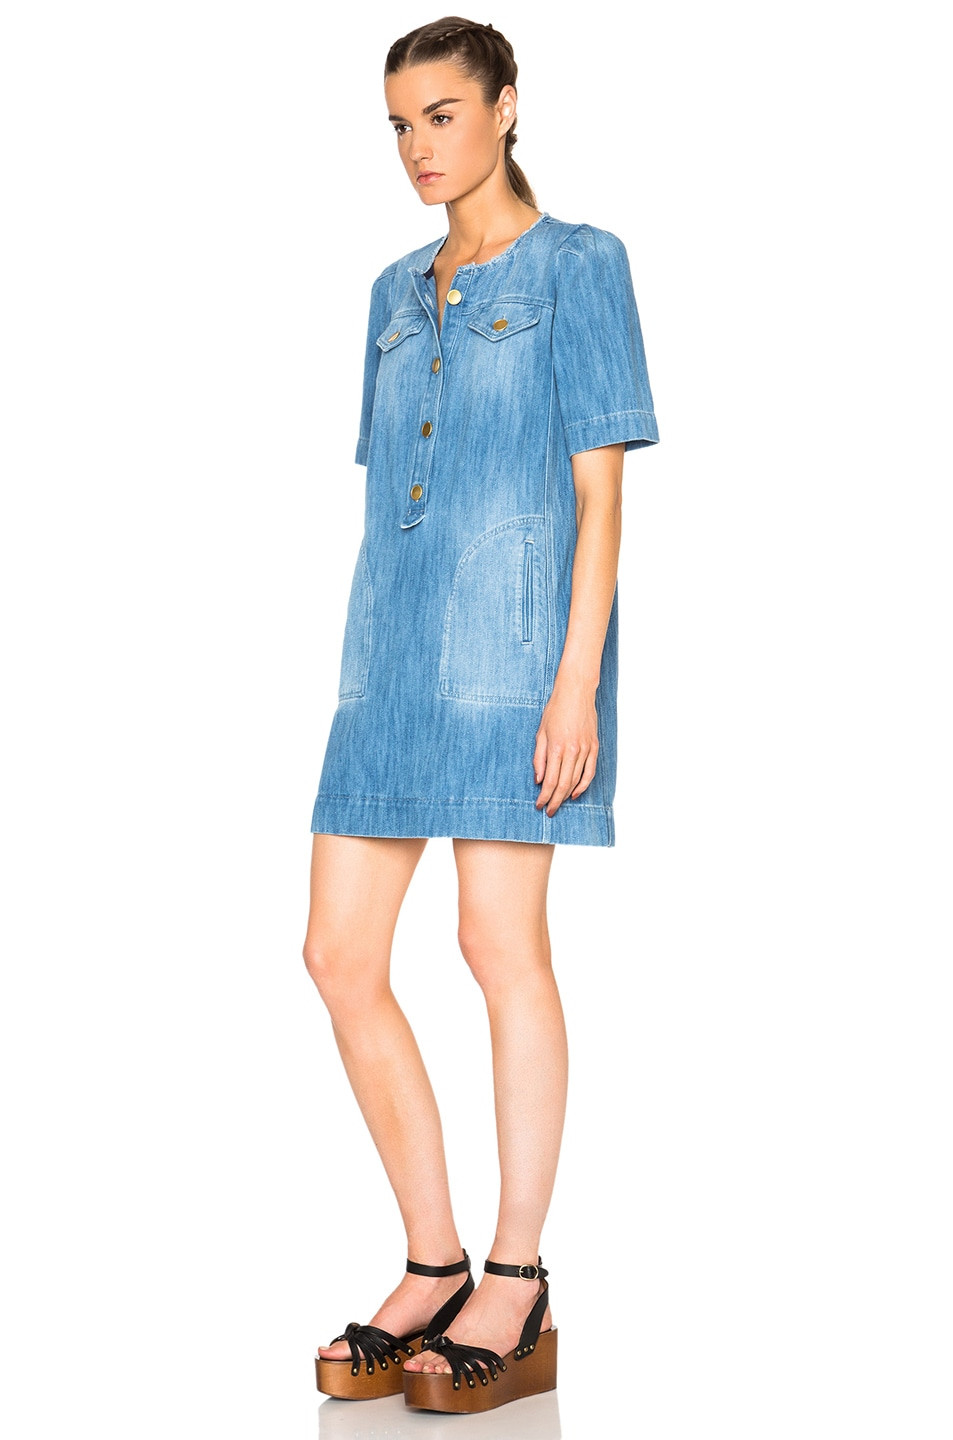 8e085a6bf8 Image 2 of Isabel Marant Etoile Oriane Fluffy Jean Dress in Blue